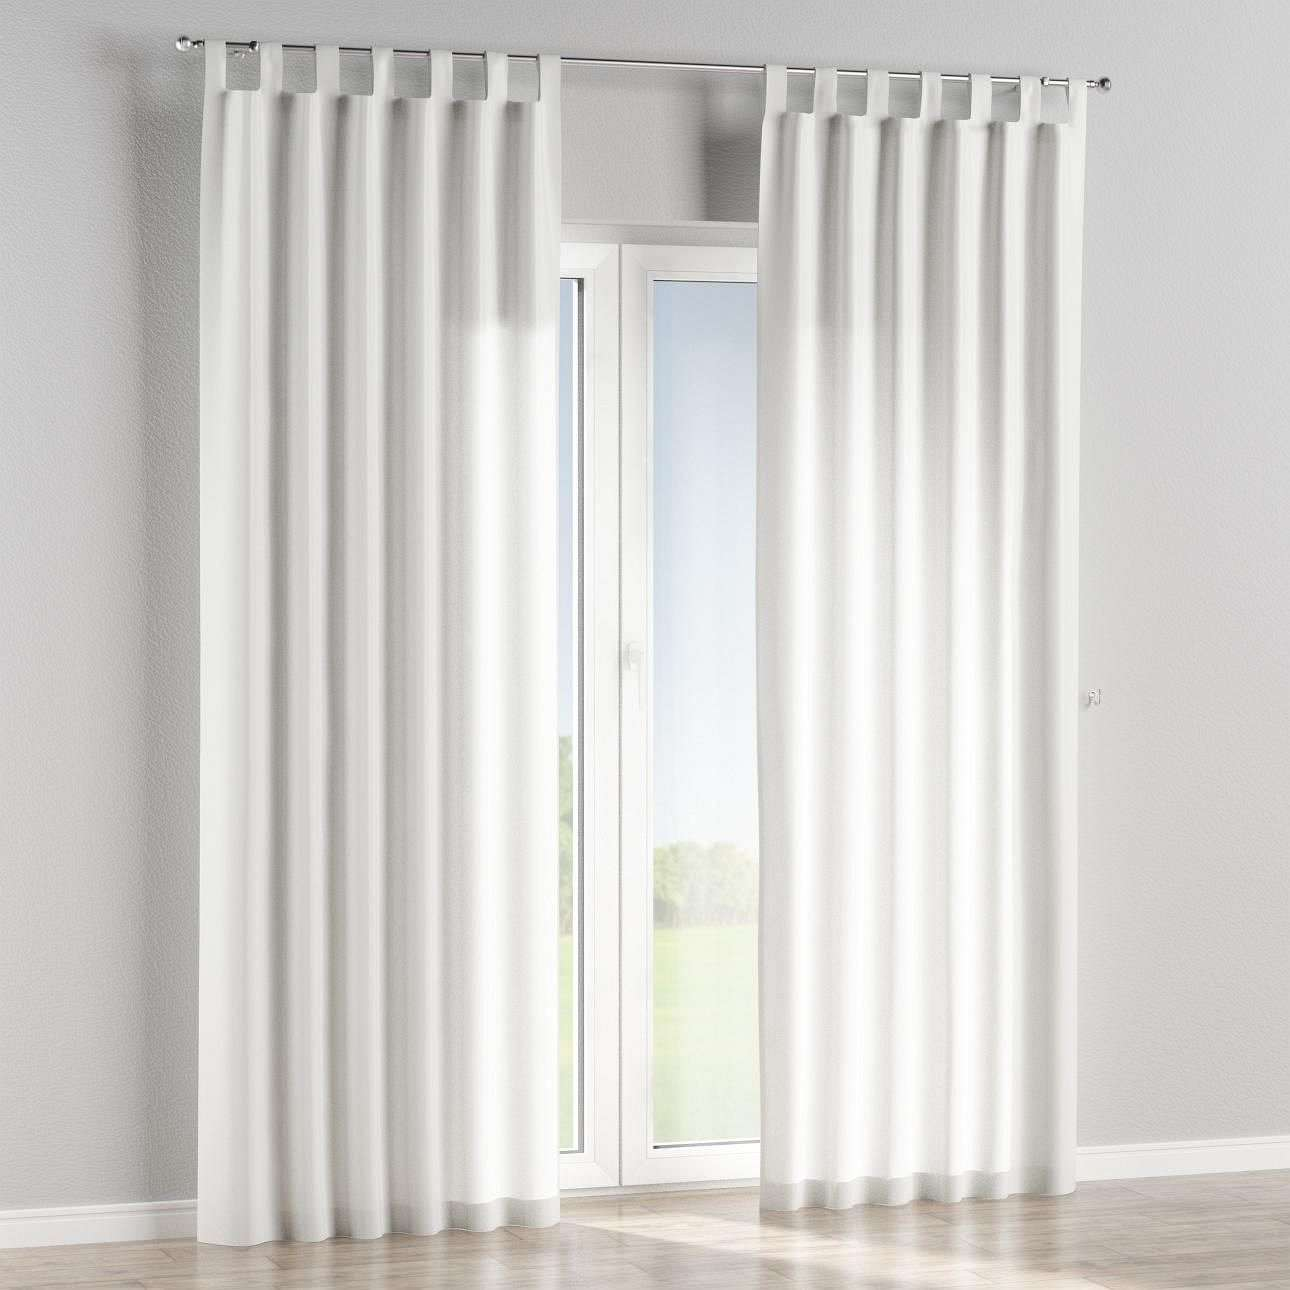 Tab top lined curtains in collection Marina, fabric: 140-16